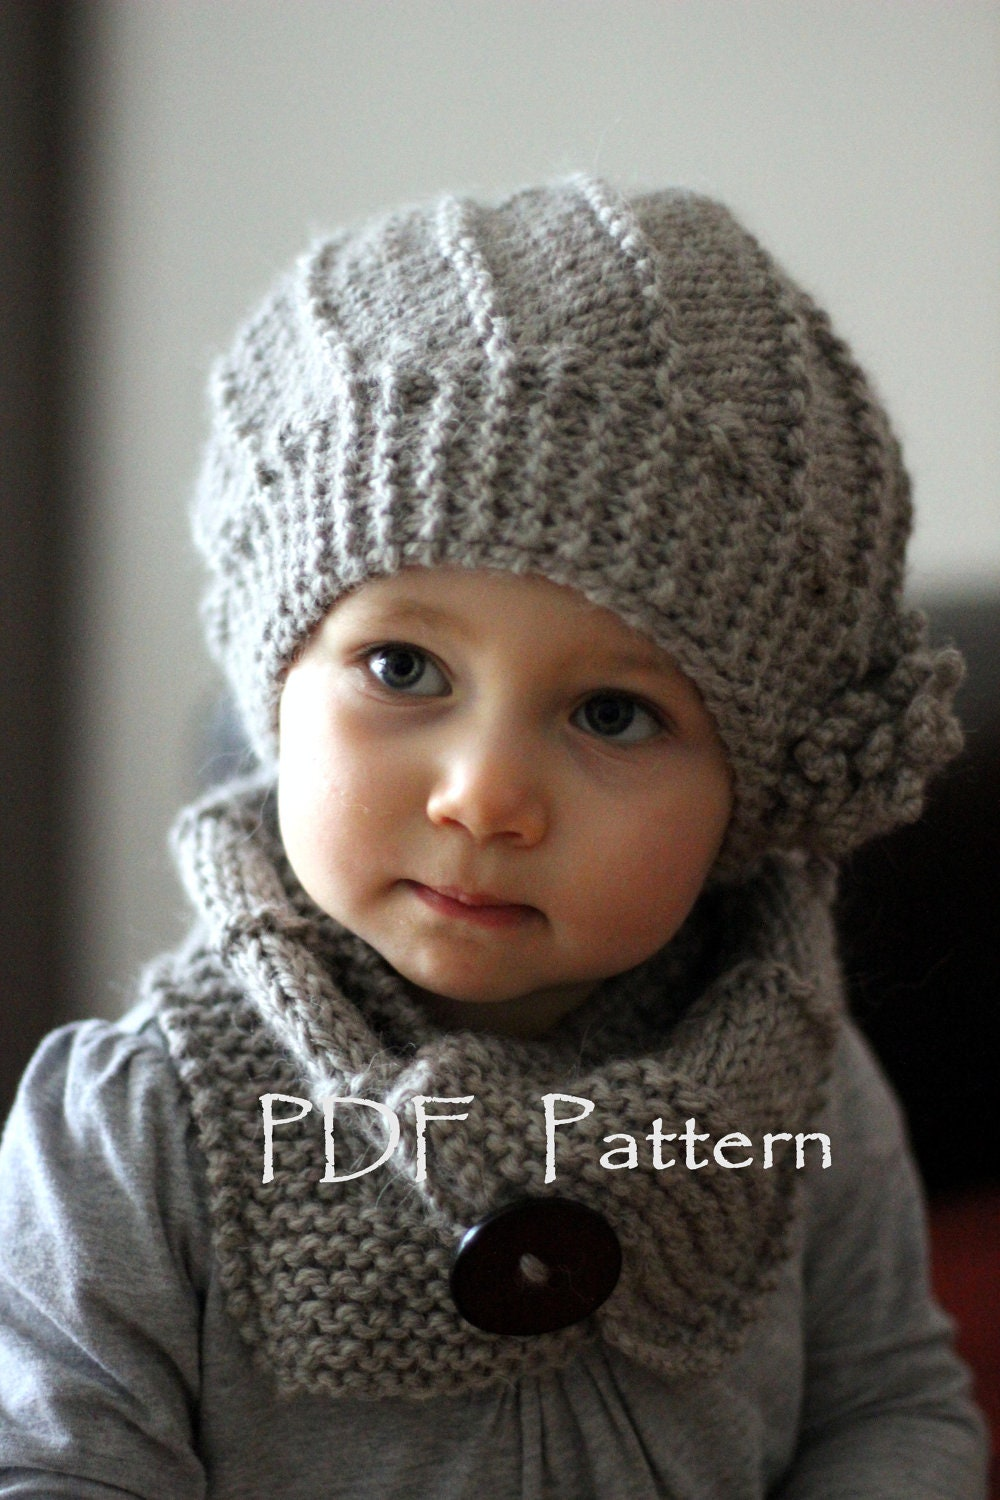 Knitted Cowl Pattern For Toddler : PDF Knitting Pattern Hat and Cowl Set Cool Wool by KatyTricot